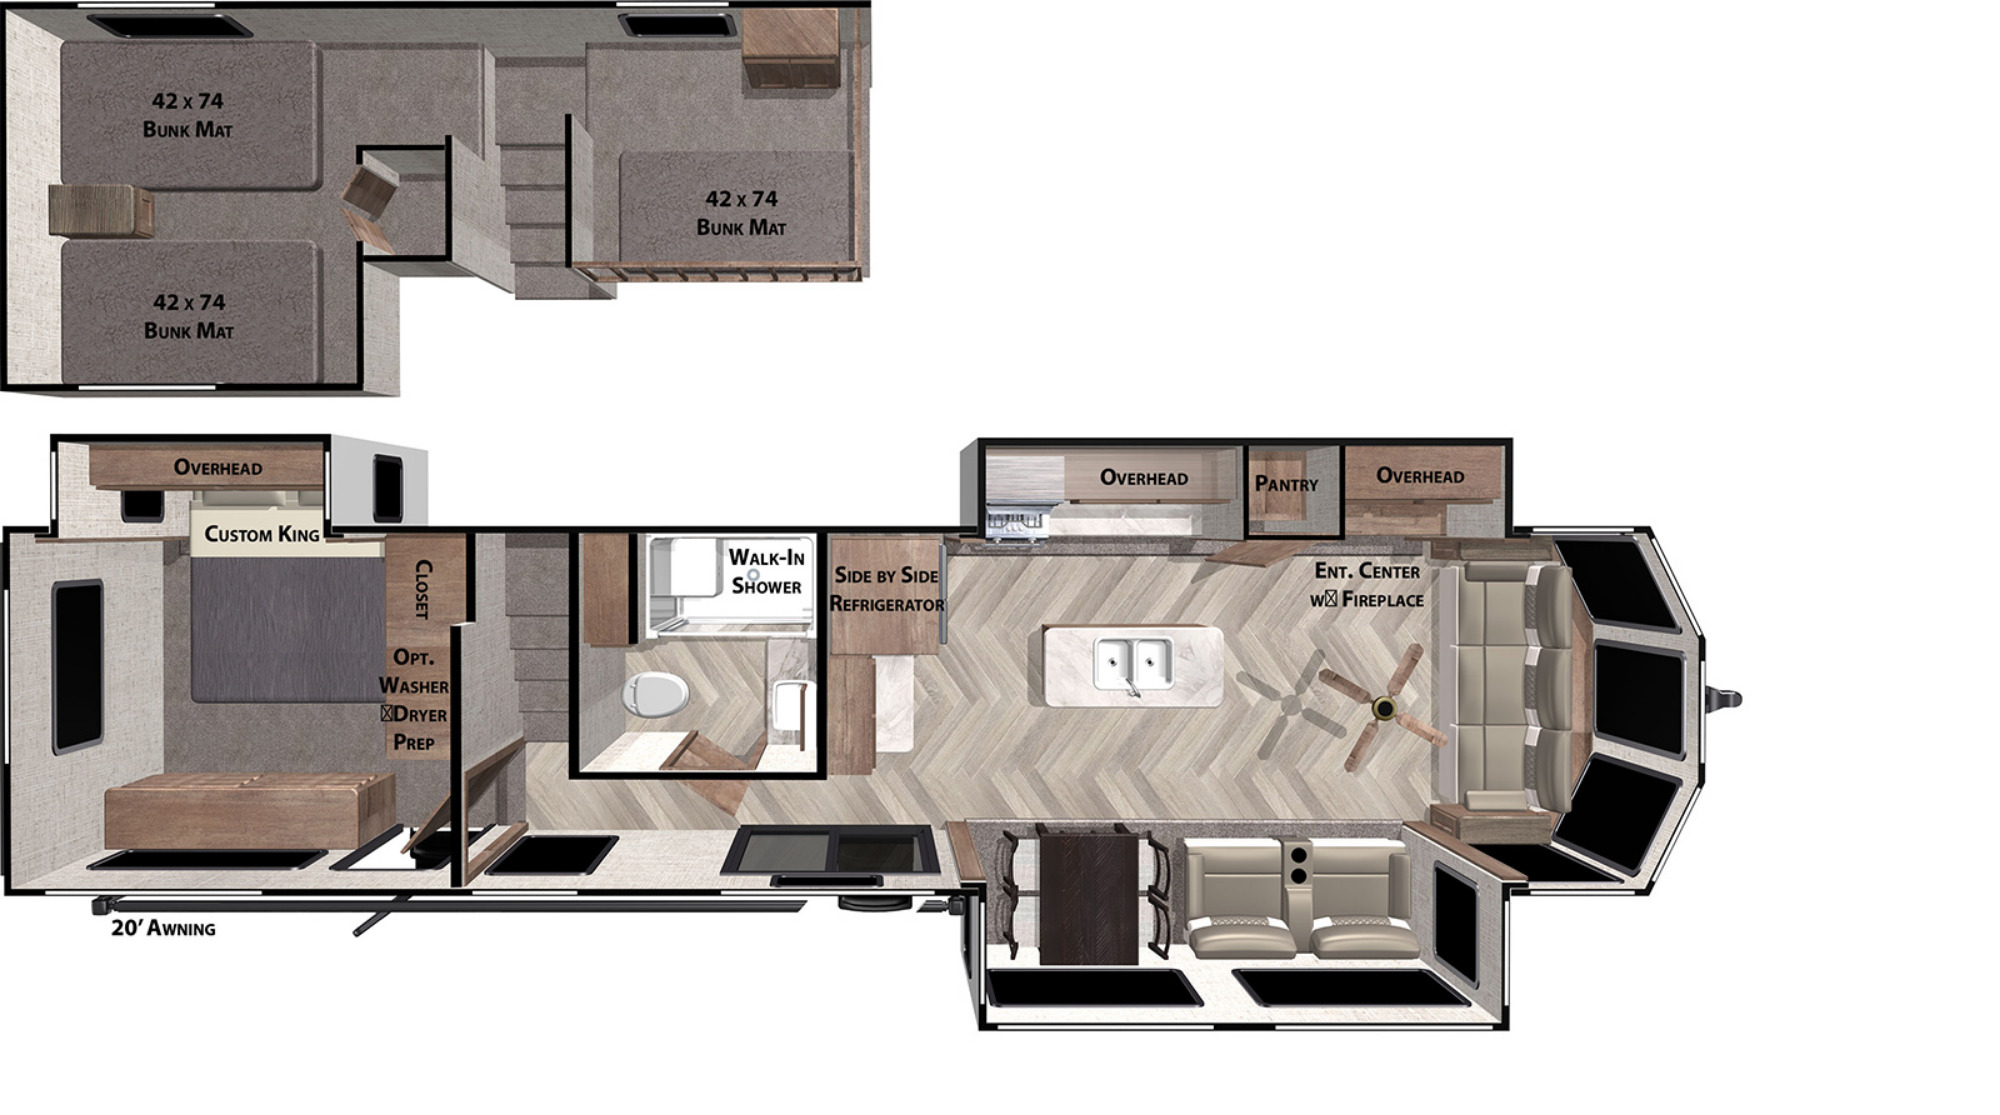 View Floor Plan for 2021 FOREST RIVER WILDWOOD GRAND LODGE 42FLDL